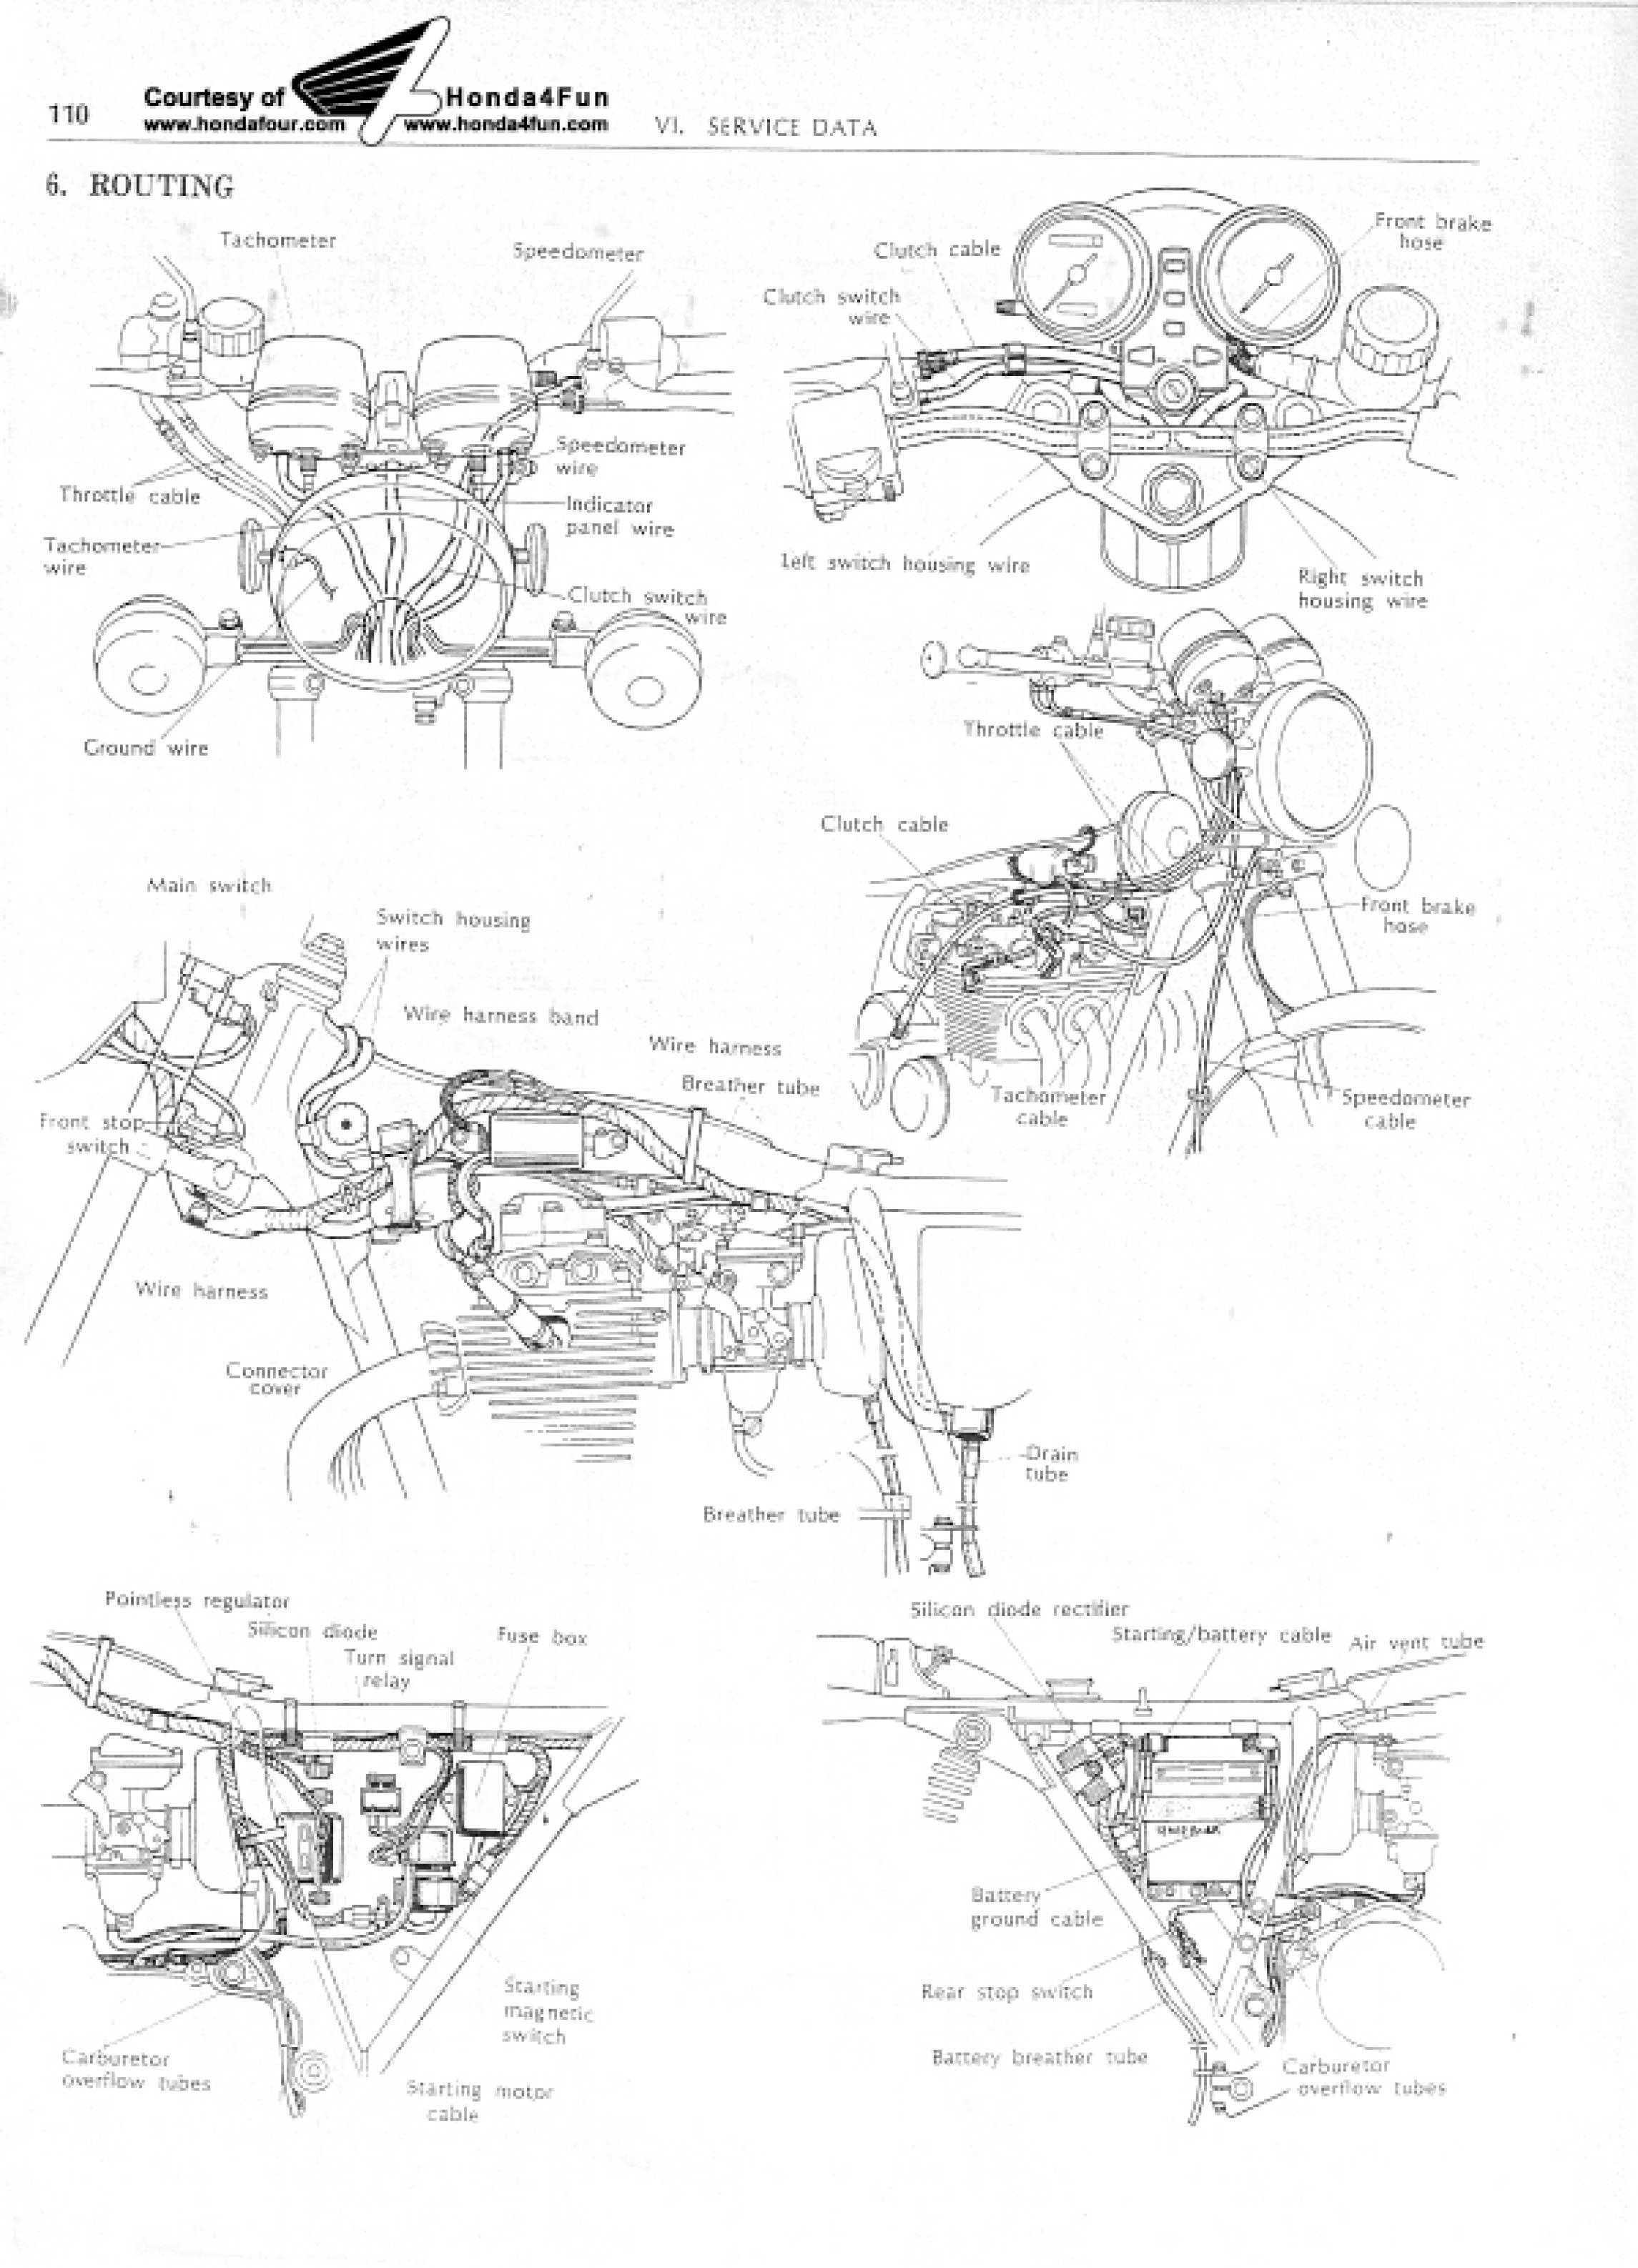 1973 Cb750 Chopper Wiring Diagram Search For Diagrams Honda Motorcycle Pcx Electricity Cb350 Four 31 Images Bobber